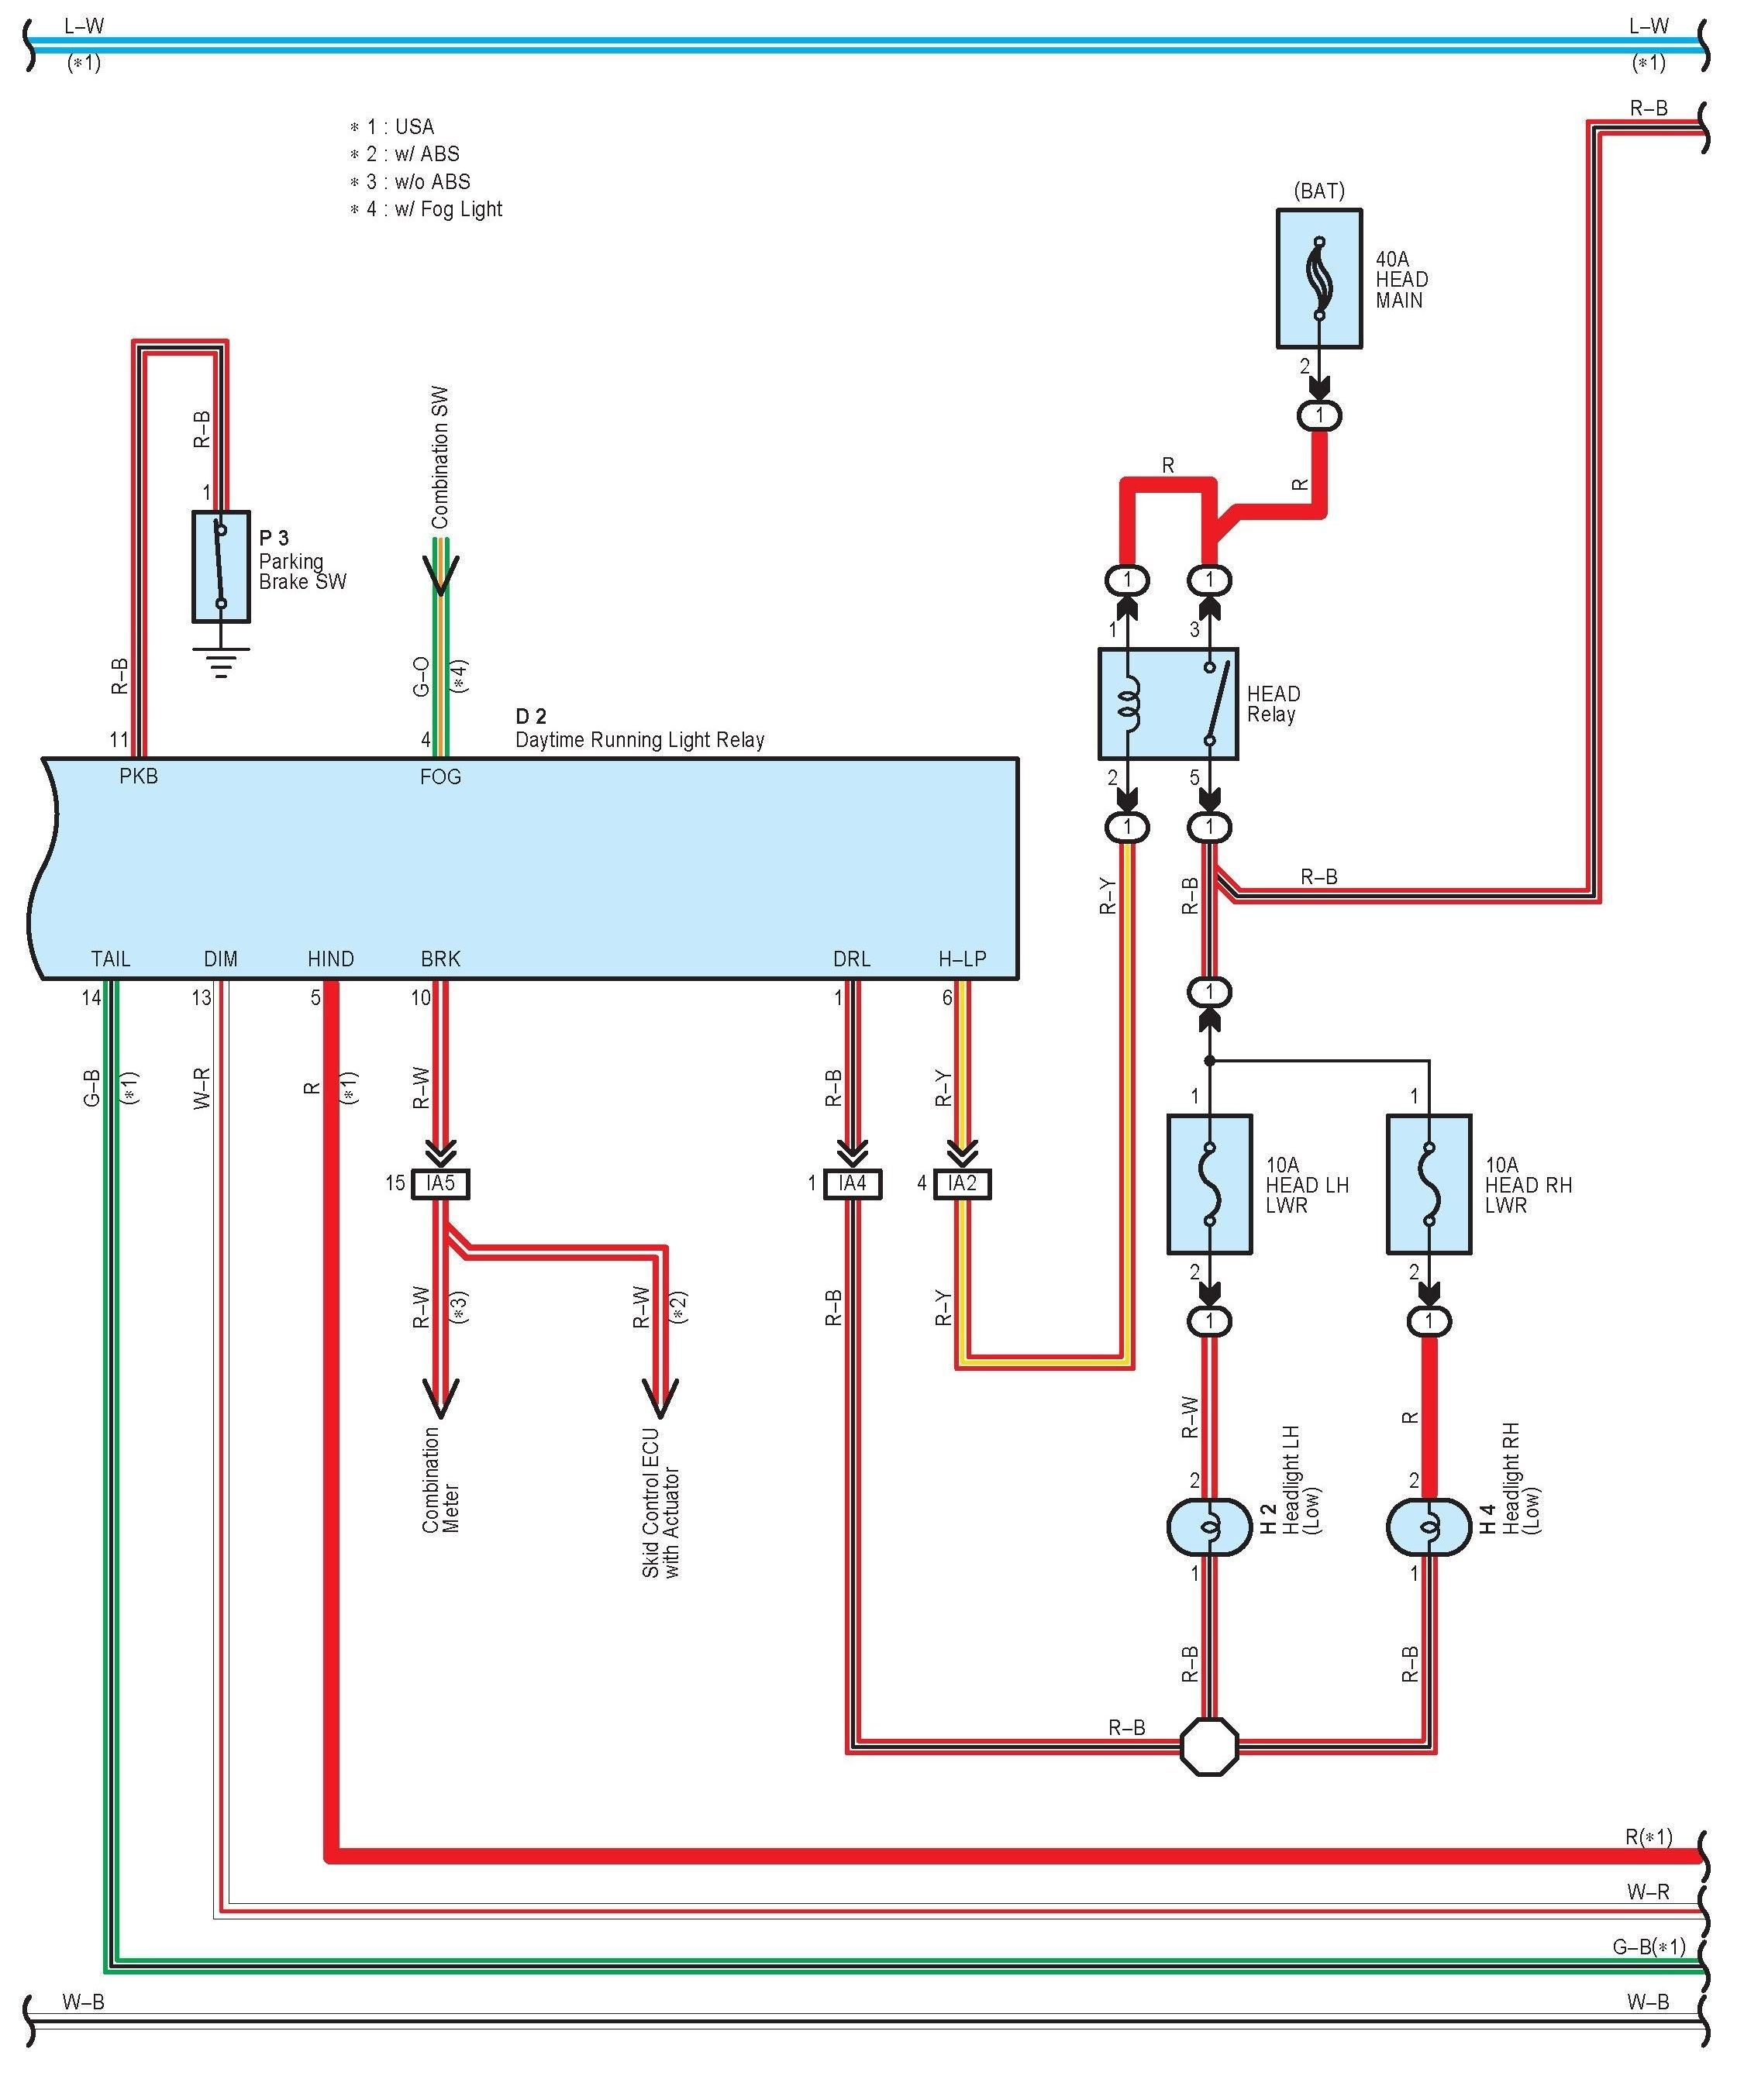 Best Of Wiring Diagram For Daytime Running Lights Diagrams Digramssample Diagramimages Wiringdiagramsample Running Lights Electrical Plan Symbols Daytime